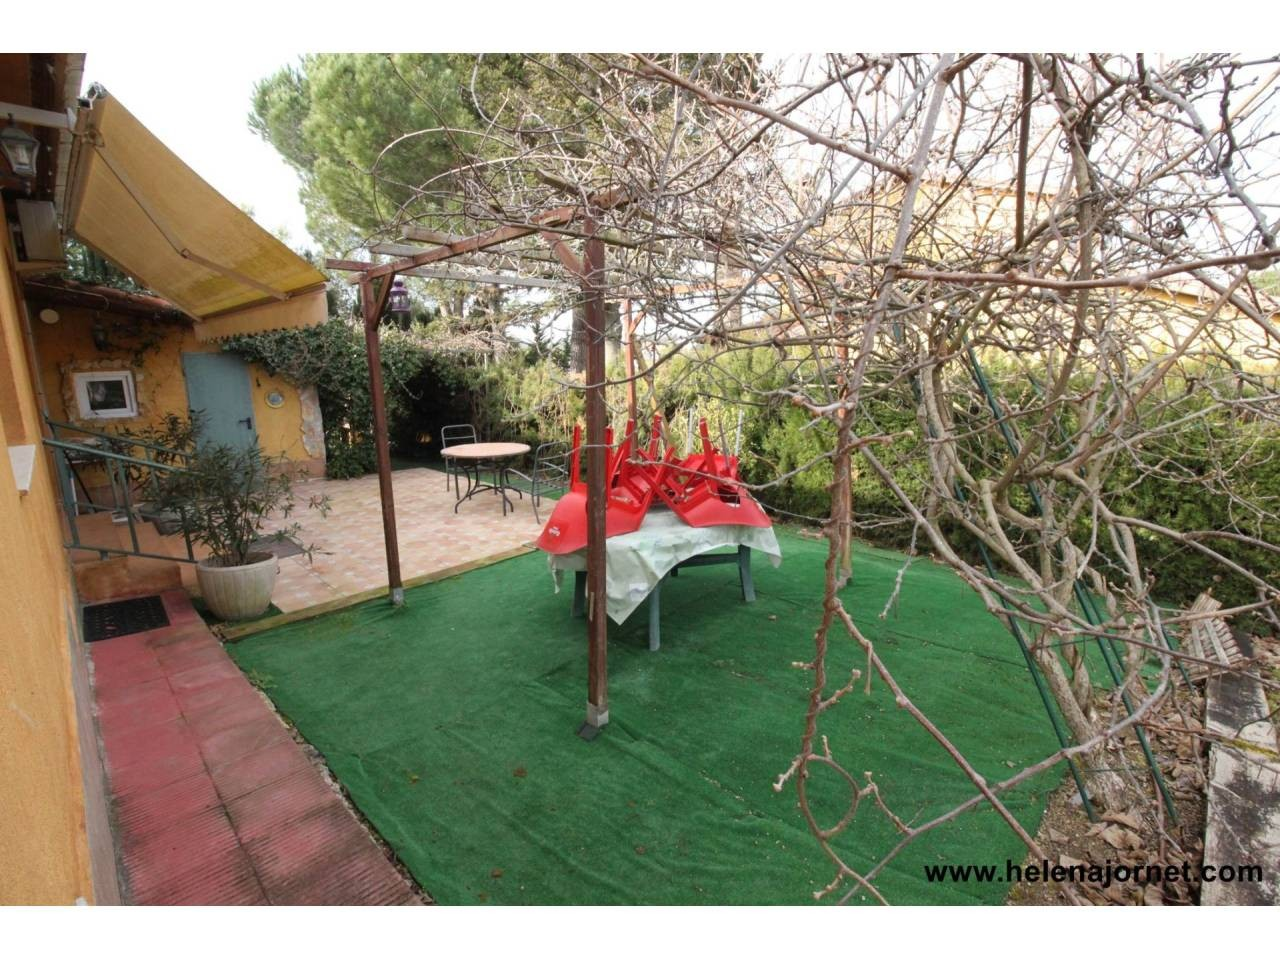 House for sale in Caldes de Malavella - 1479